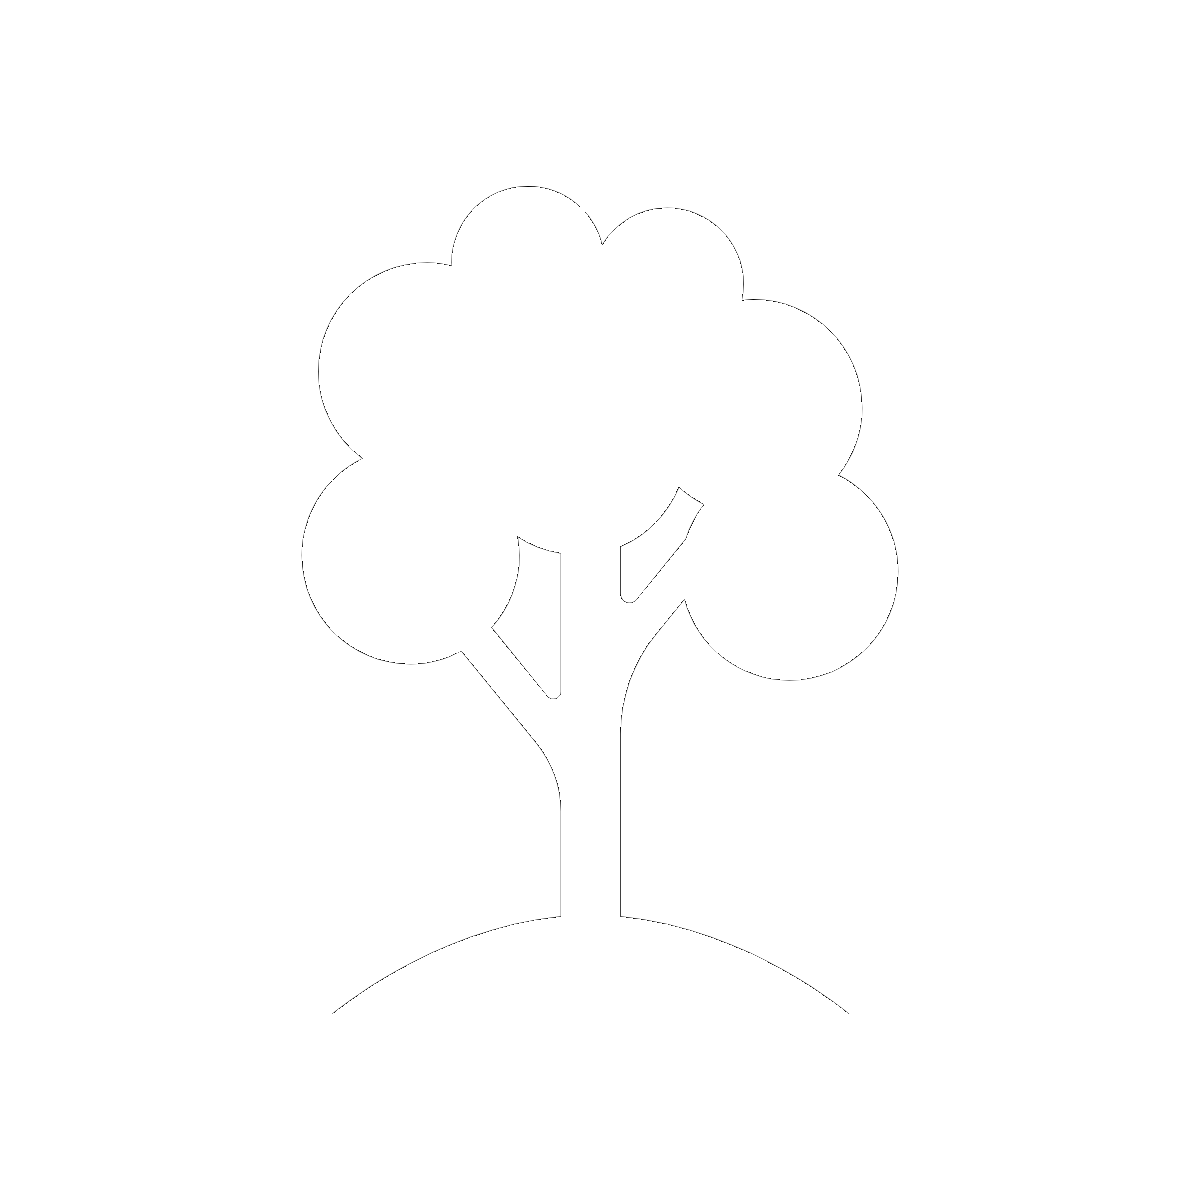 Symbol The Black Walnut Tree